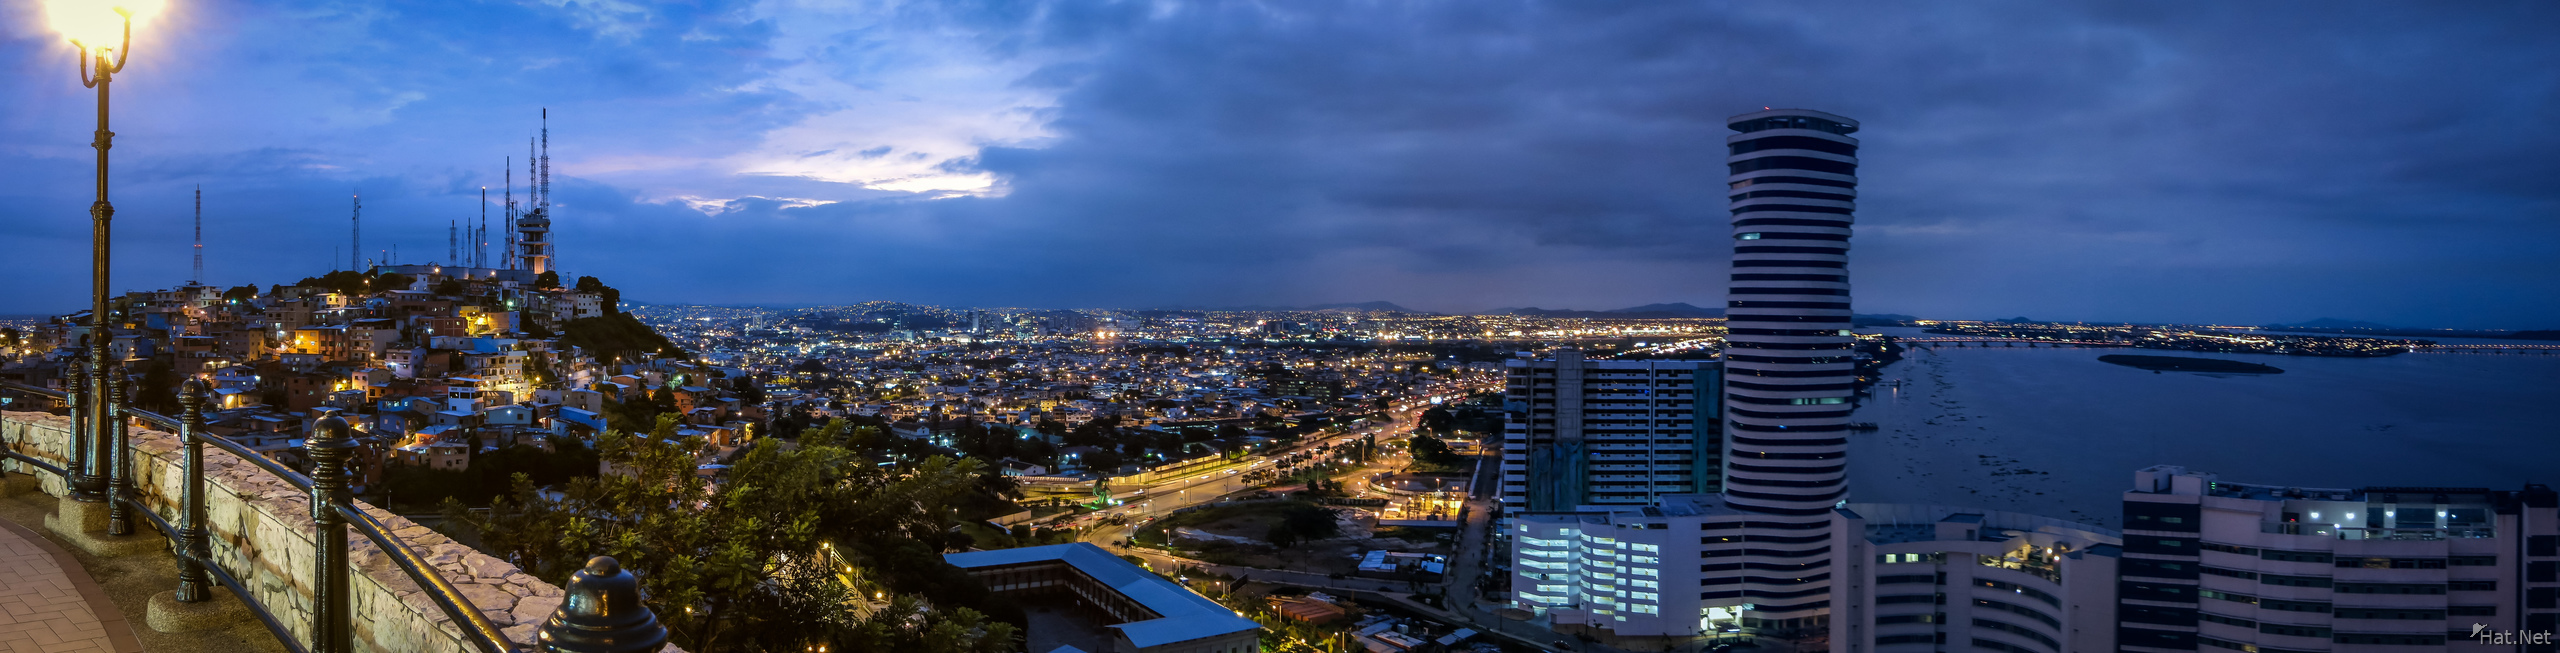 Guayaquil Las Penas and the Point Panorama at night